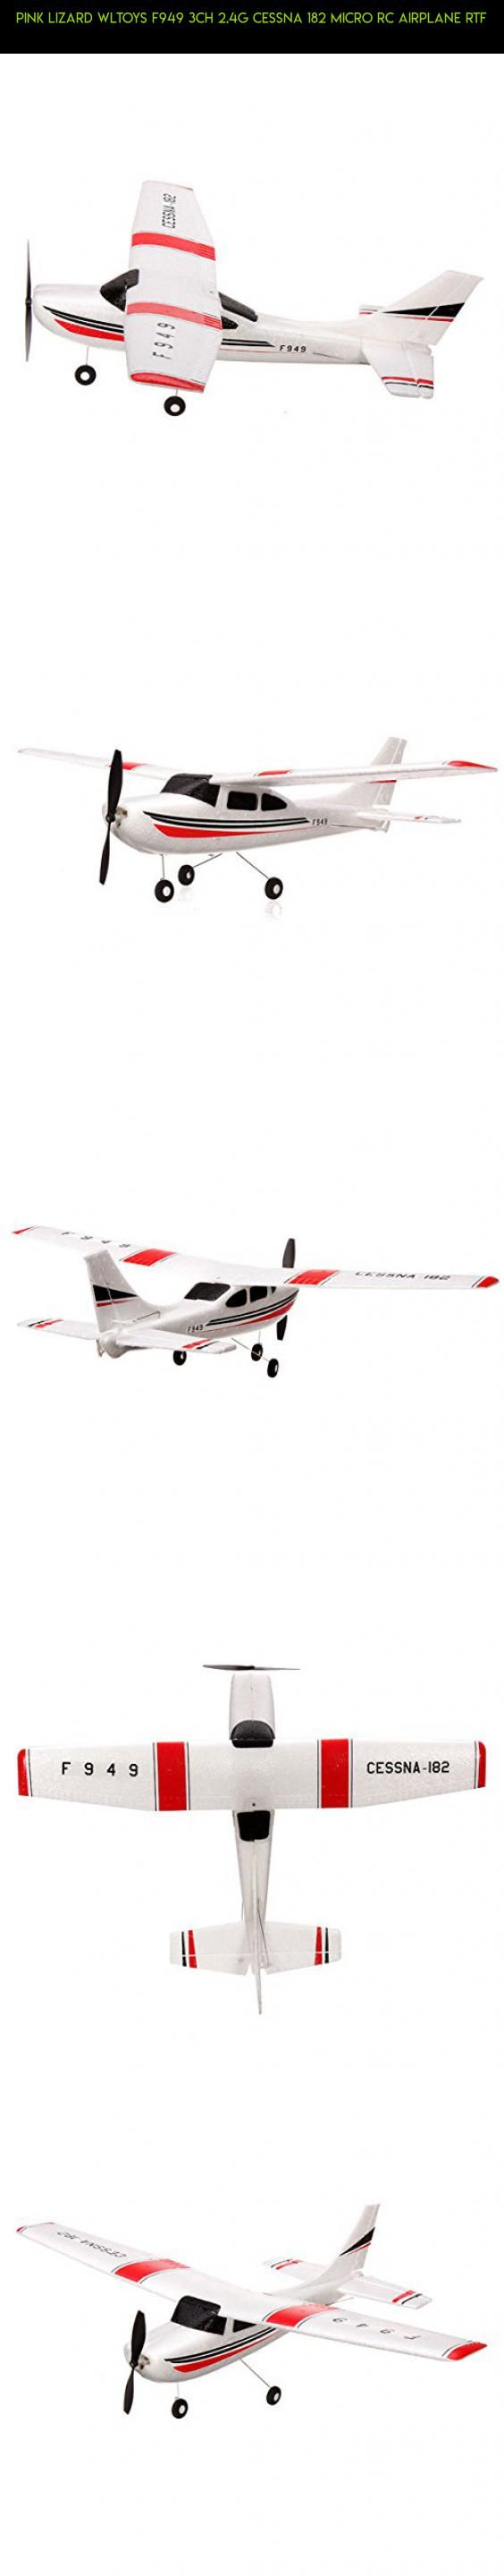 Pink Lizard WLtoys F949 3CH 2.4G Cessna 182 Micro RC Airplane RTF #drone #cessna #182 #tech #gadgets #parts #camera #fpv #products #wltoys #racing #kit #technology #plans #shopping